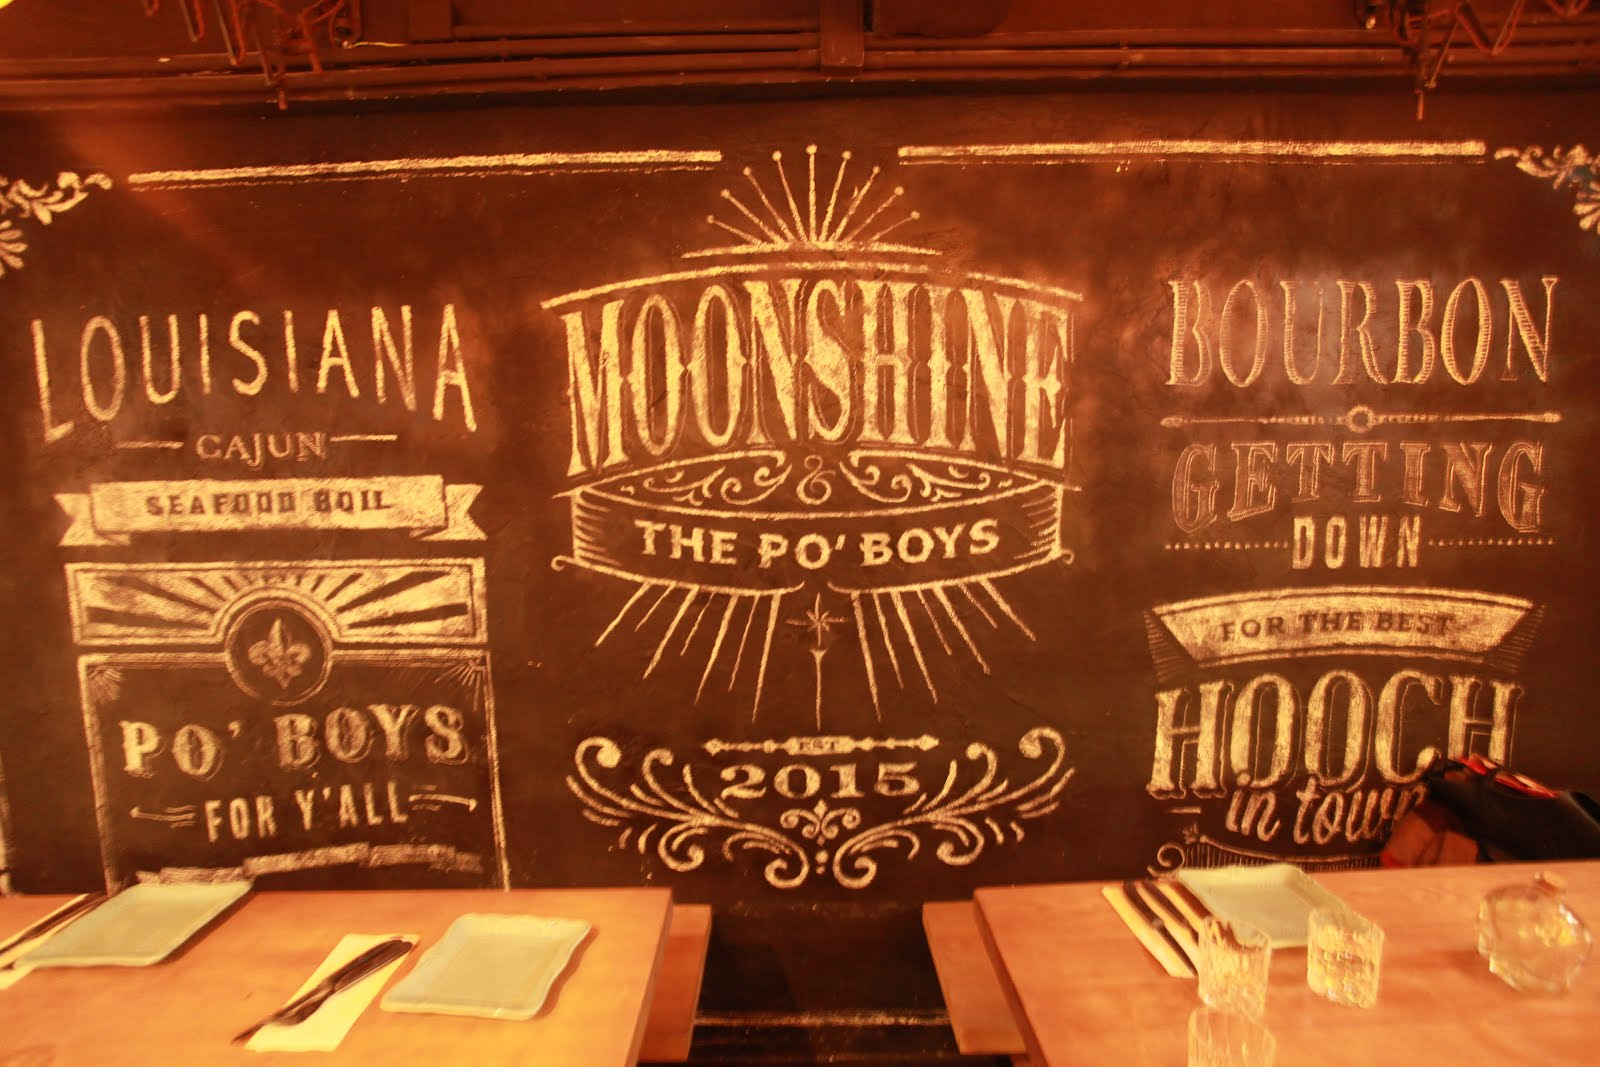 Moonshine & The Po\'Boys - A Hip Night Out with Southern Food | hkblogger